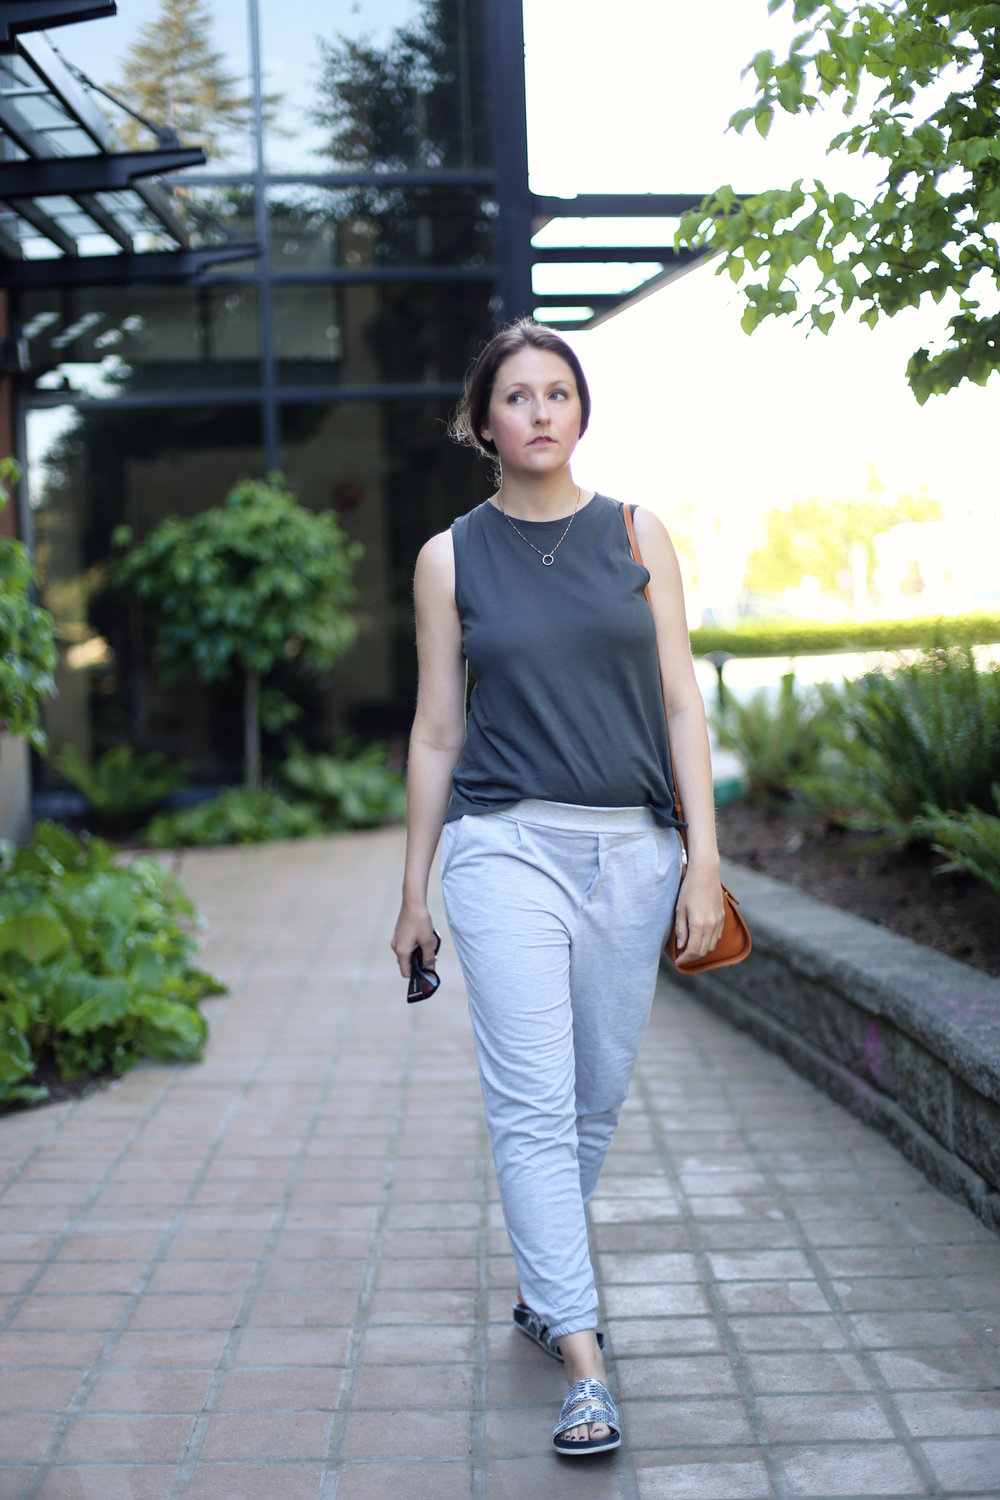 Outfit inspiration: how to wear sweatpants outside the house and still look stylish.